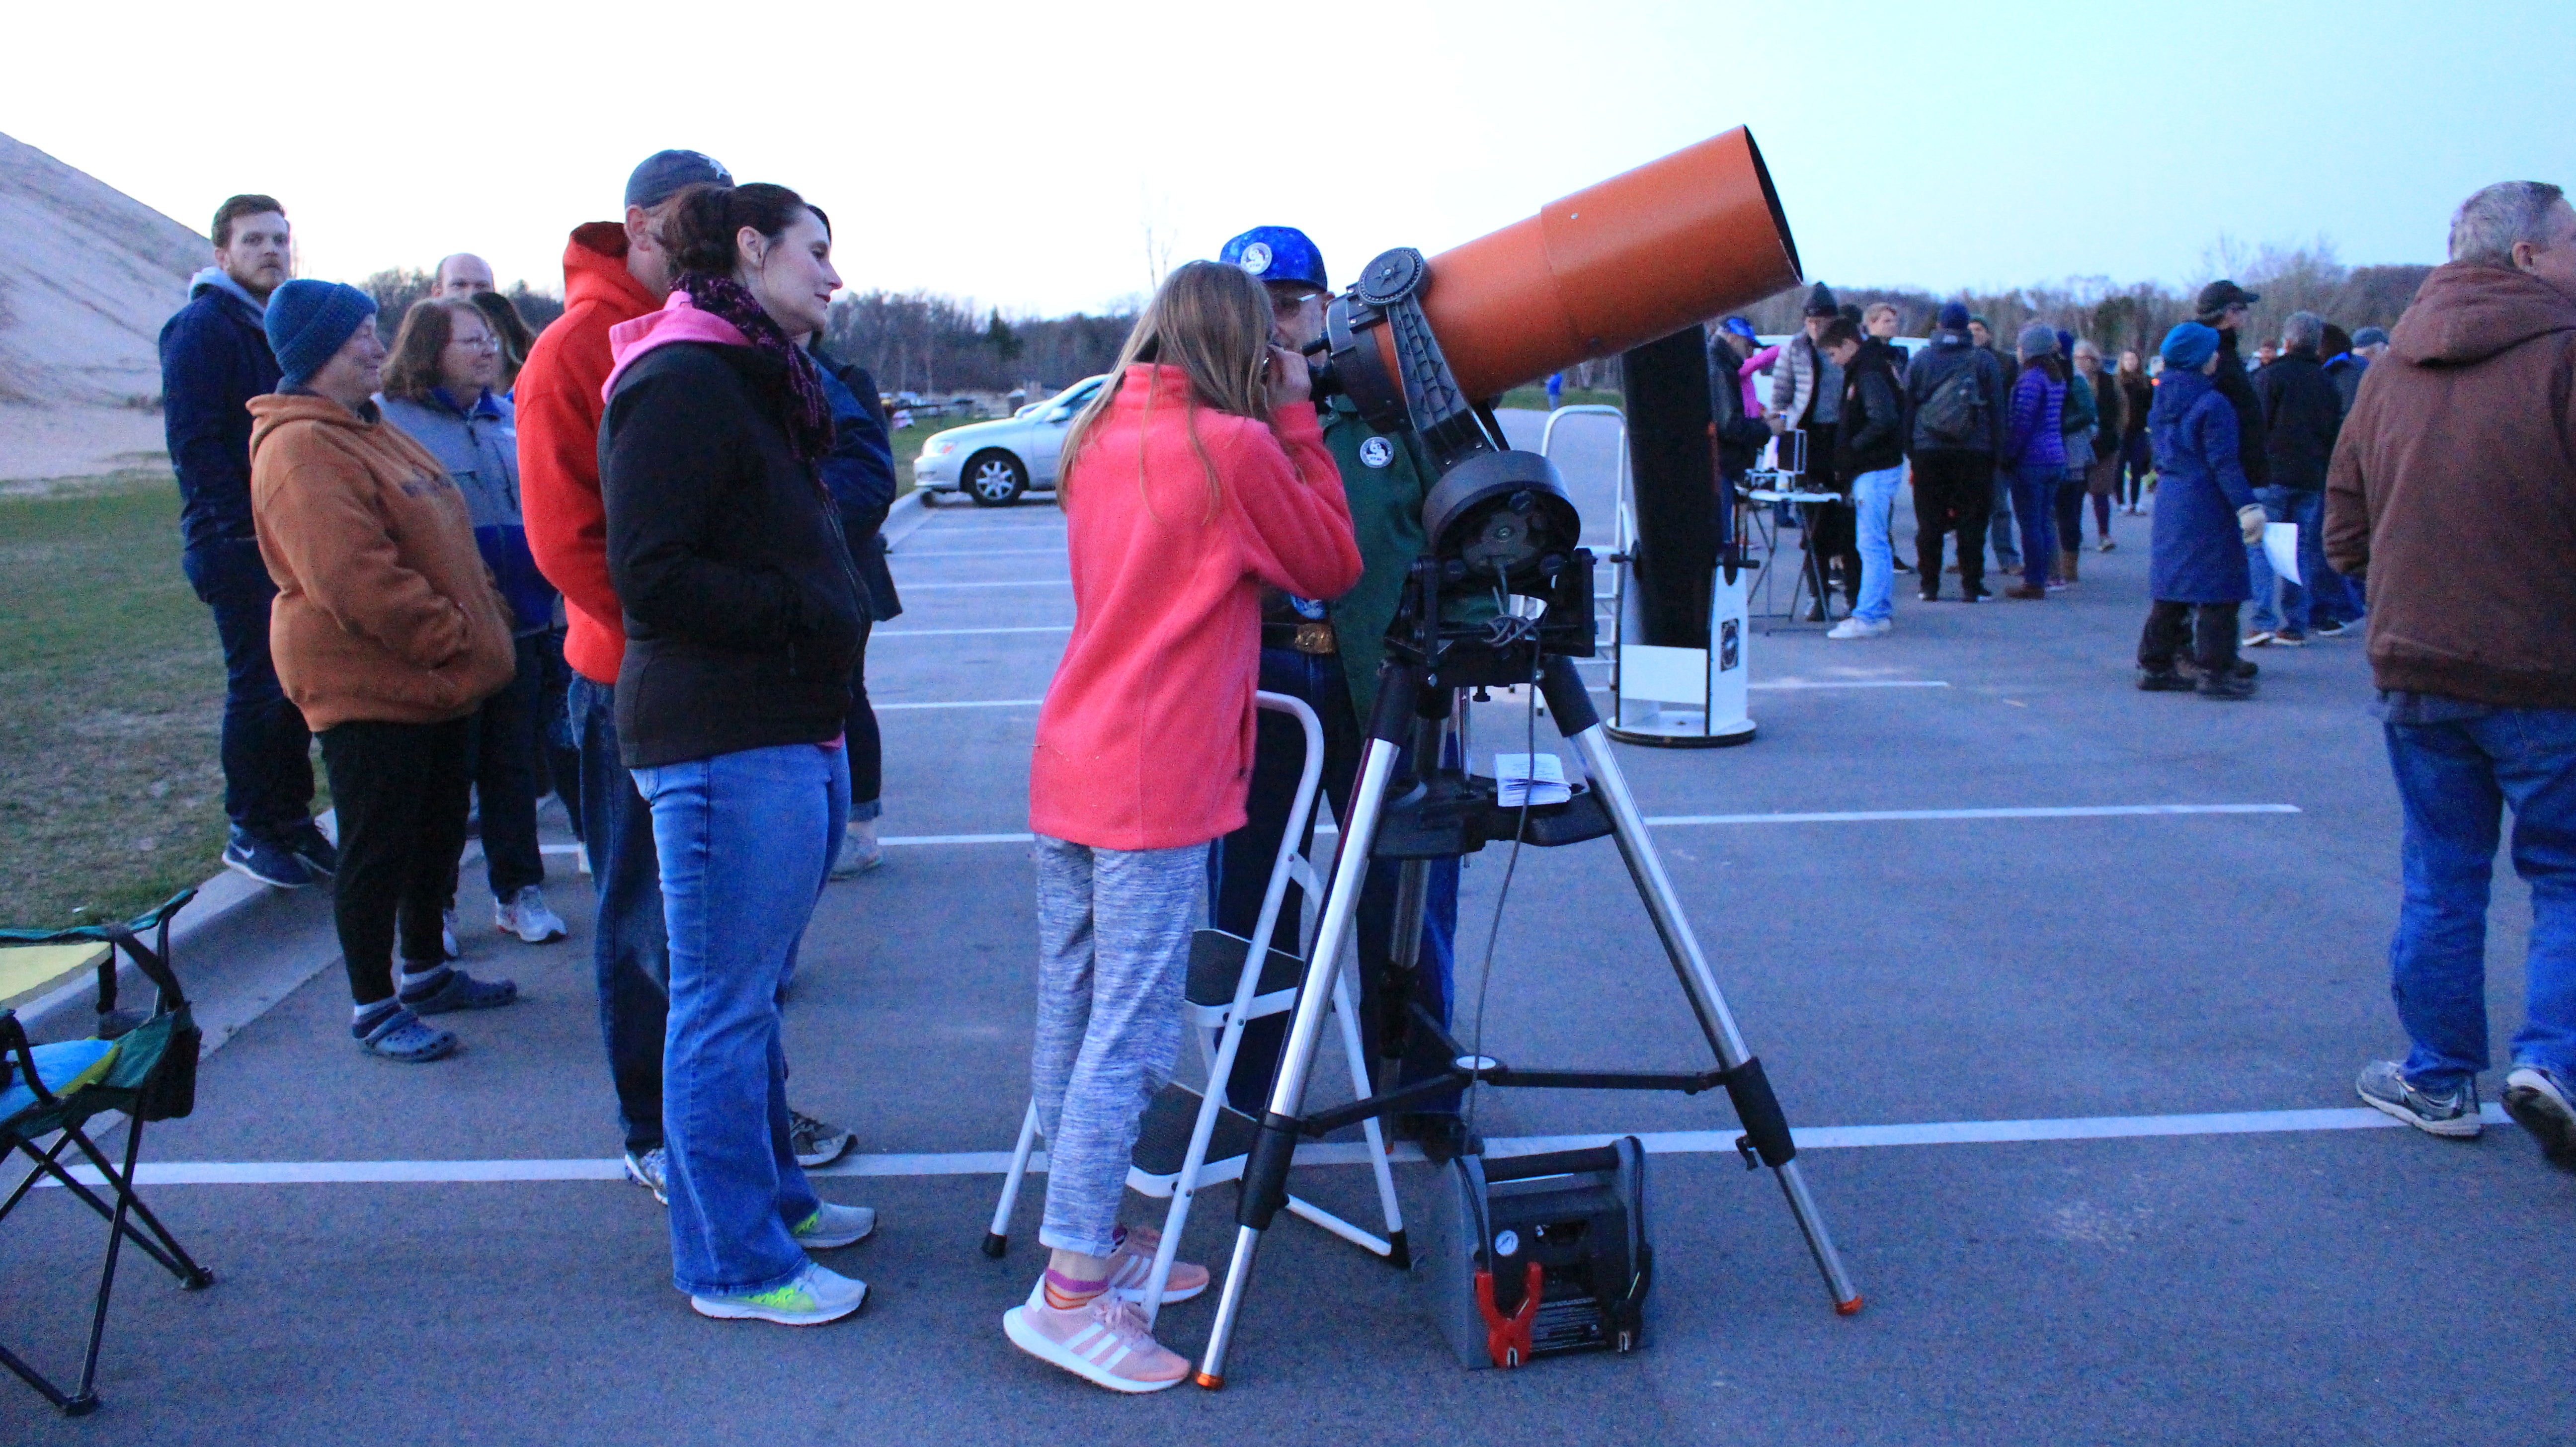 Visitors looking through large telescopes